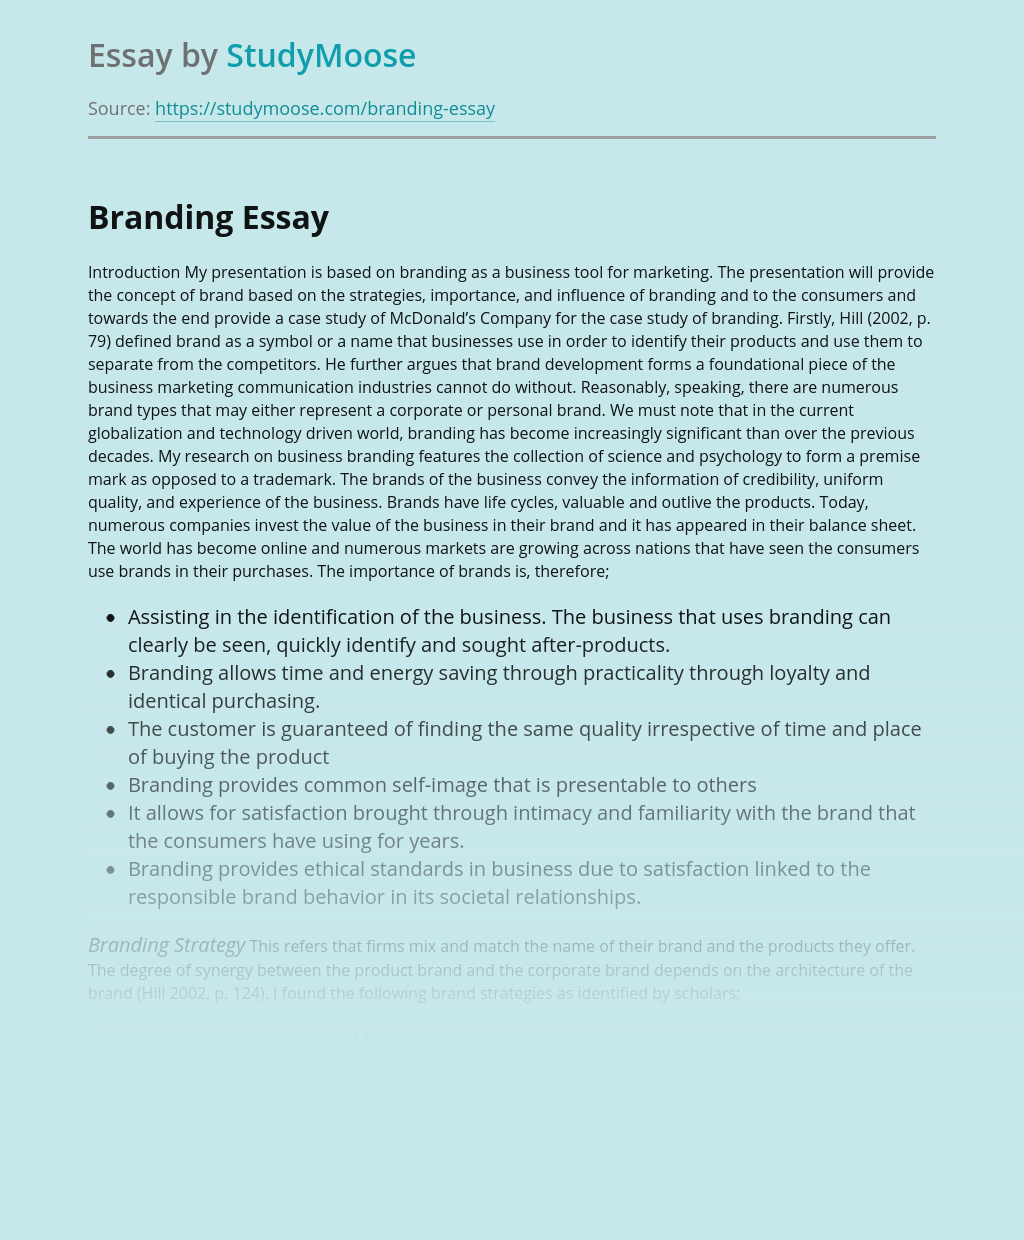 Branding as a Tool for Marketing